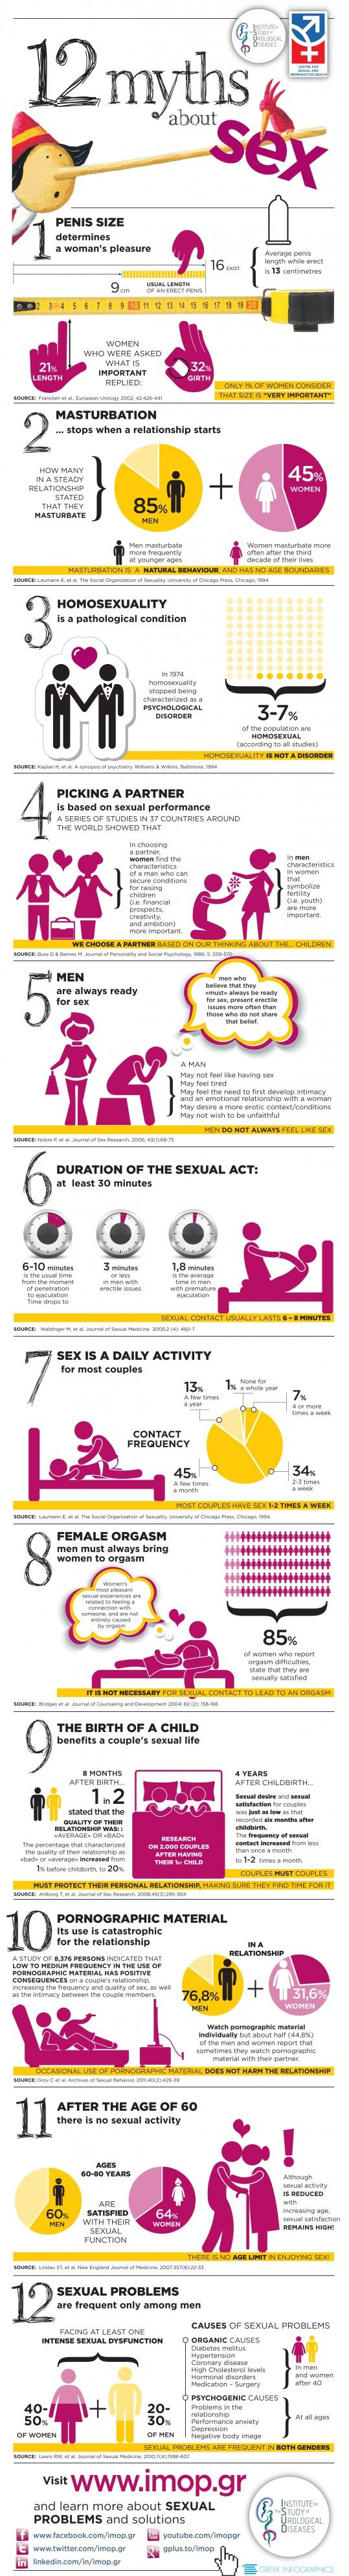 Green Yatra Blog 12 Myths About Sex {Infographic} - Green Yatra Blog